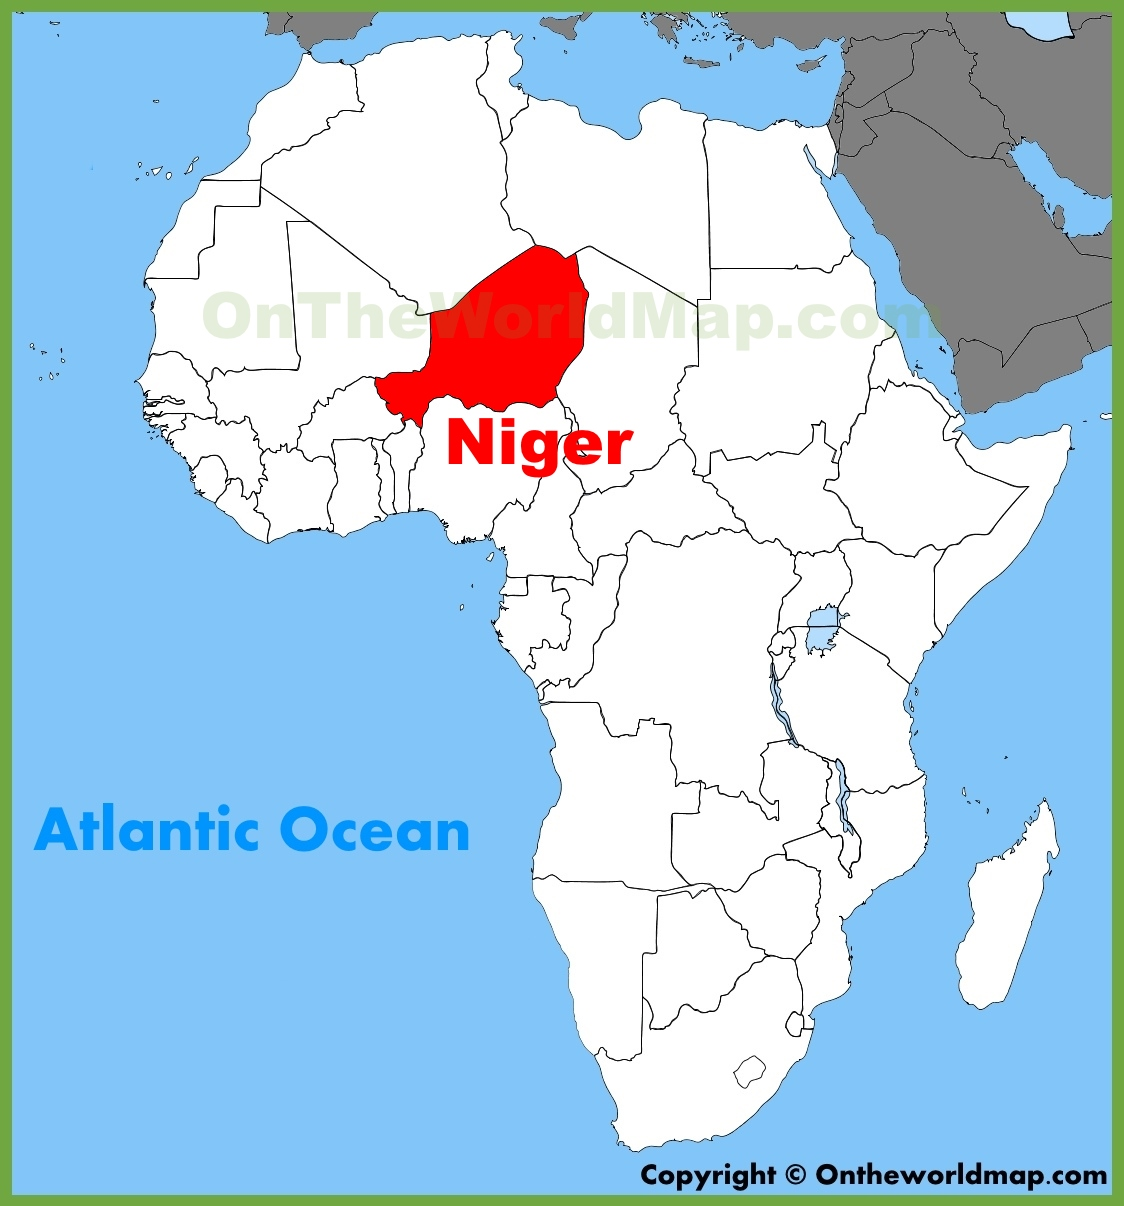 Niger Map Of Africa Niger location on the Africa map